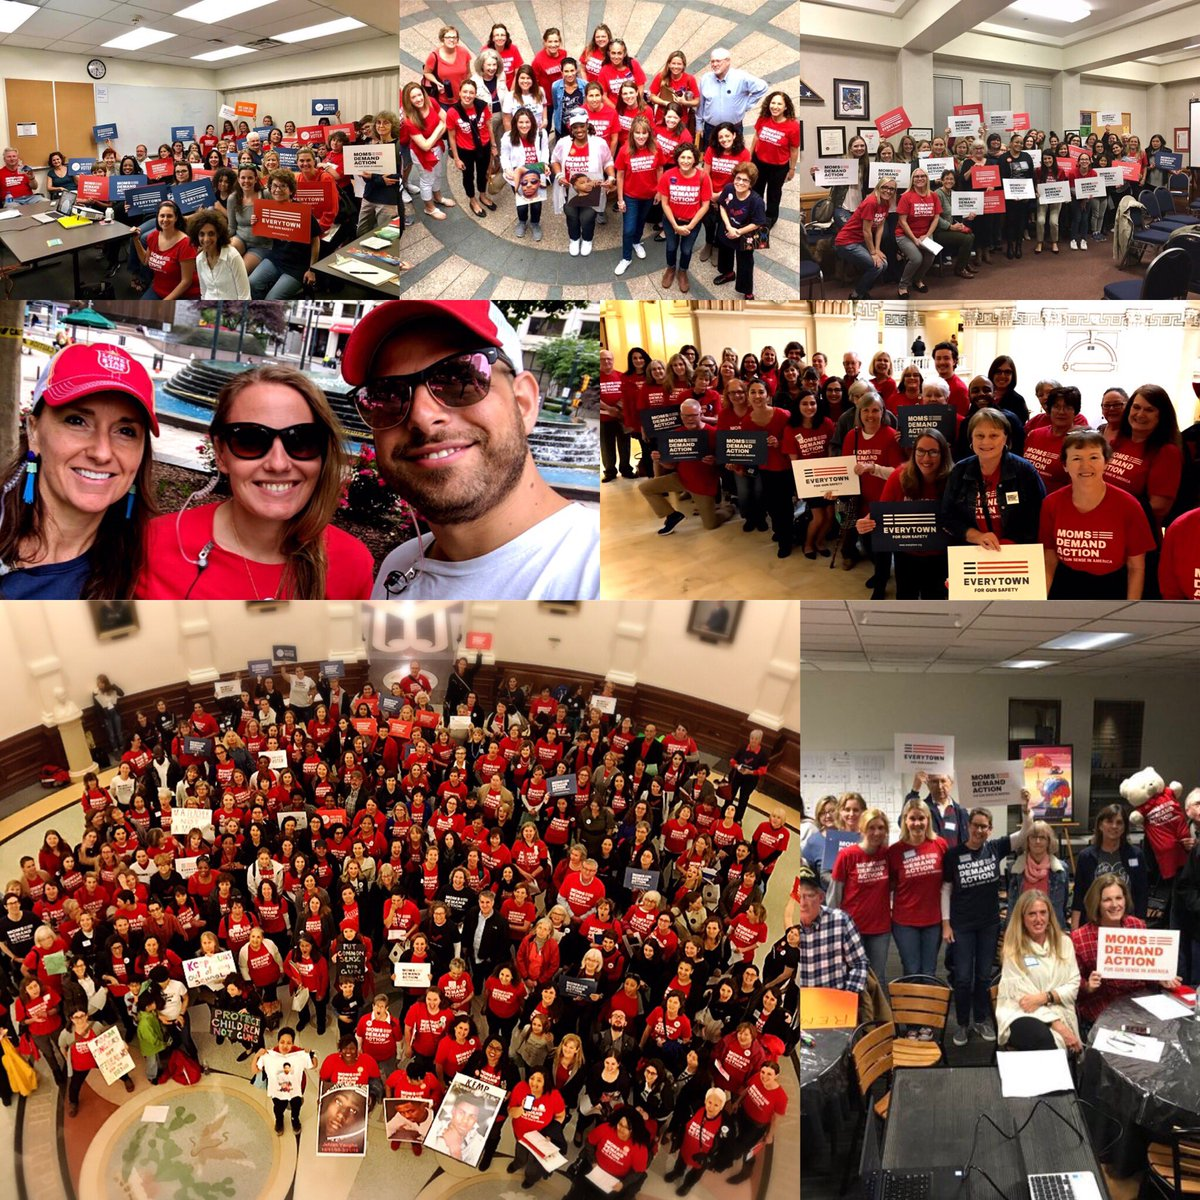 Today I&#39;m thankful to @MomsDemand volunteers across the country fighting for safe communities every day. #HappyThankgiving #ThursdayThoughts <br>http://pic.twitter.com/oeufHFQSXd